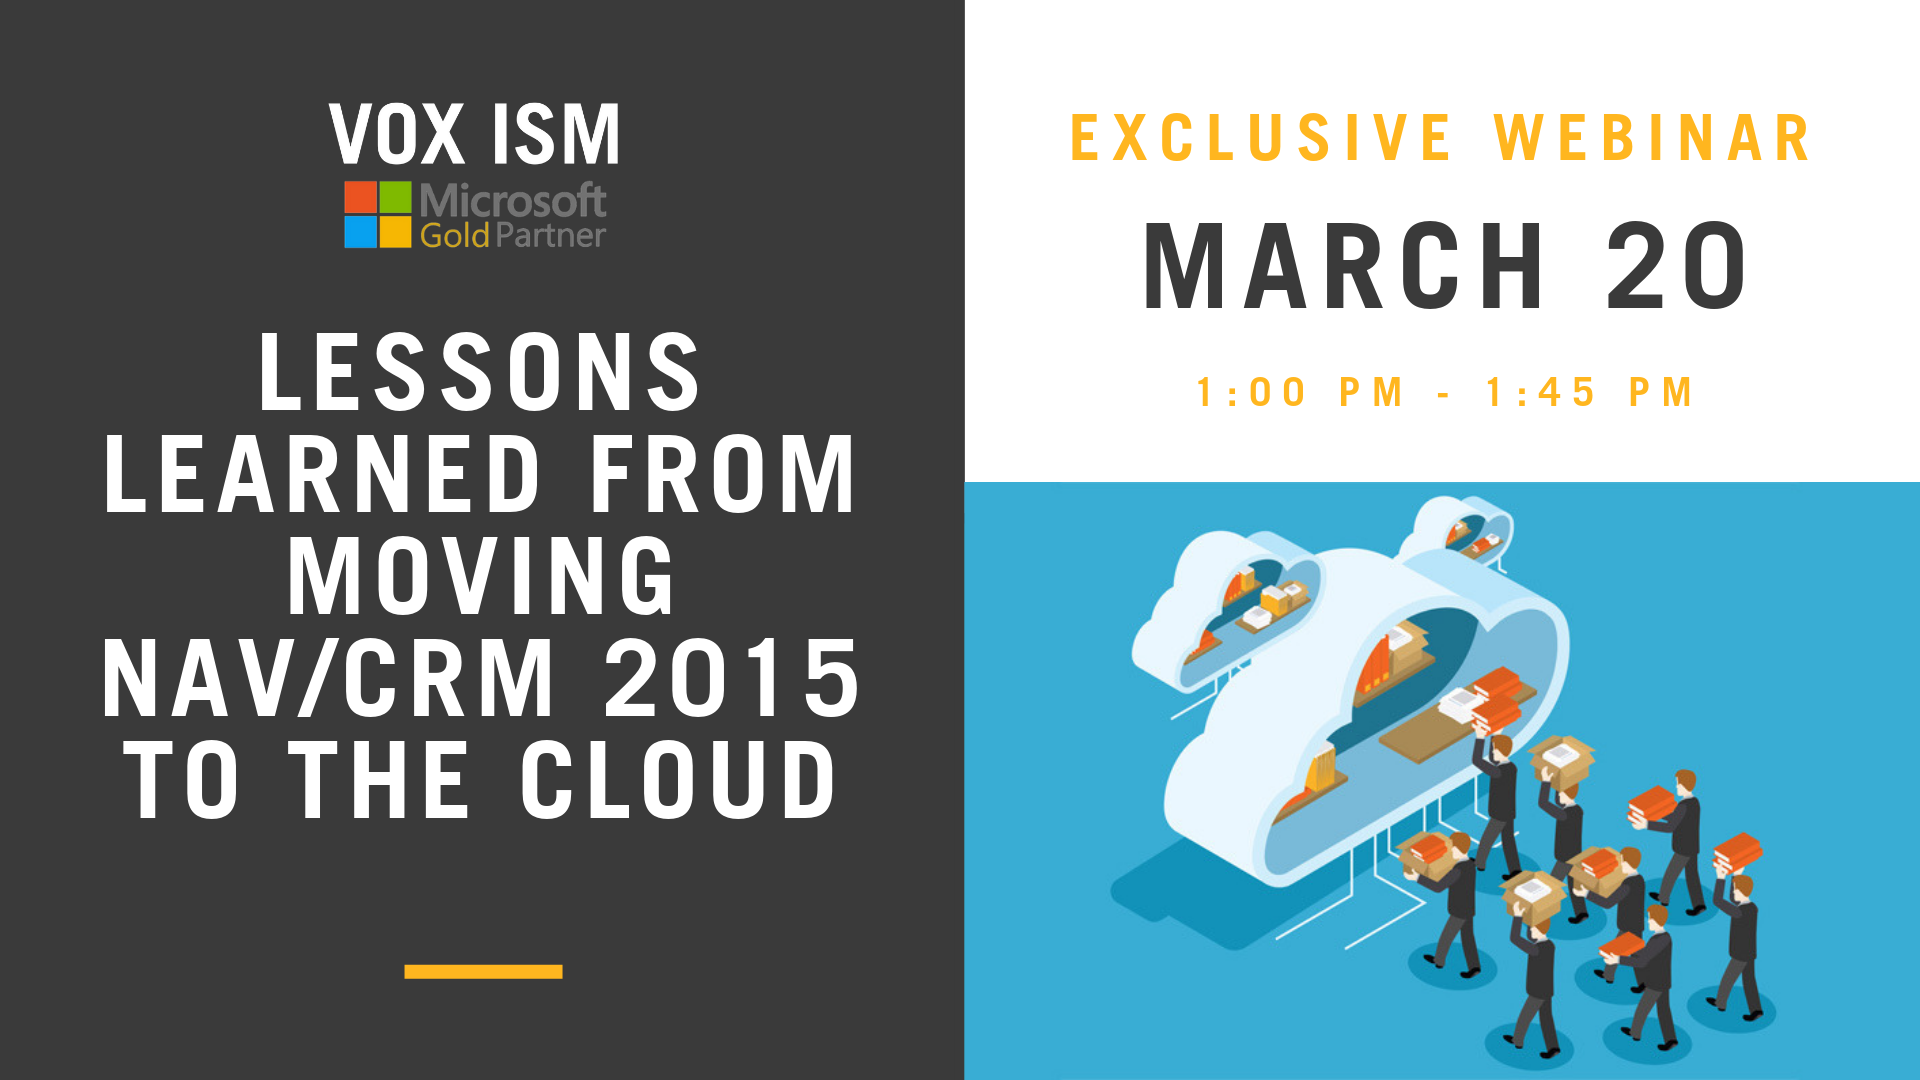 Lessons learned from moving NAV/CRM 2015 to the cloud – March 20 – Webinar